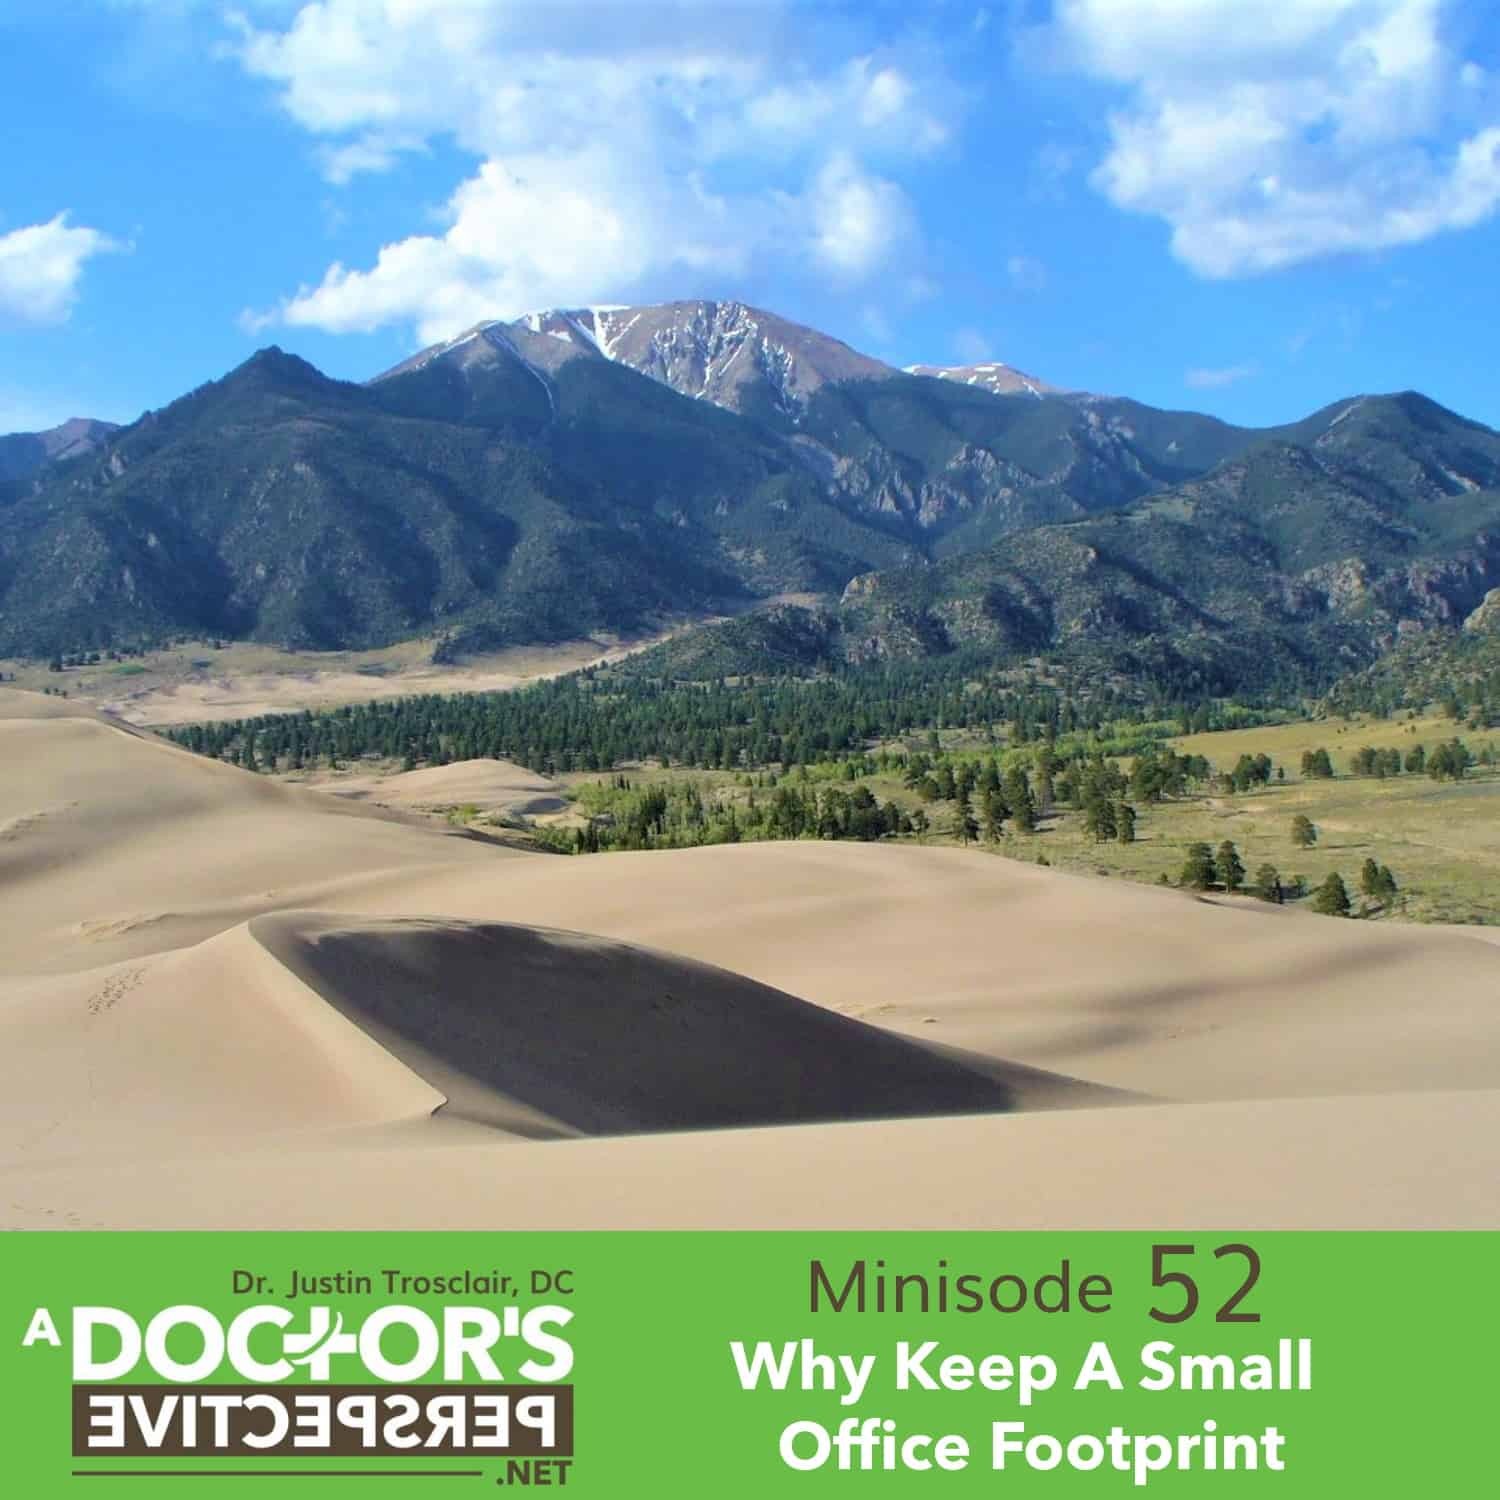 a doctors perspective minisode 52 sand moutains office footprint